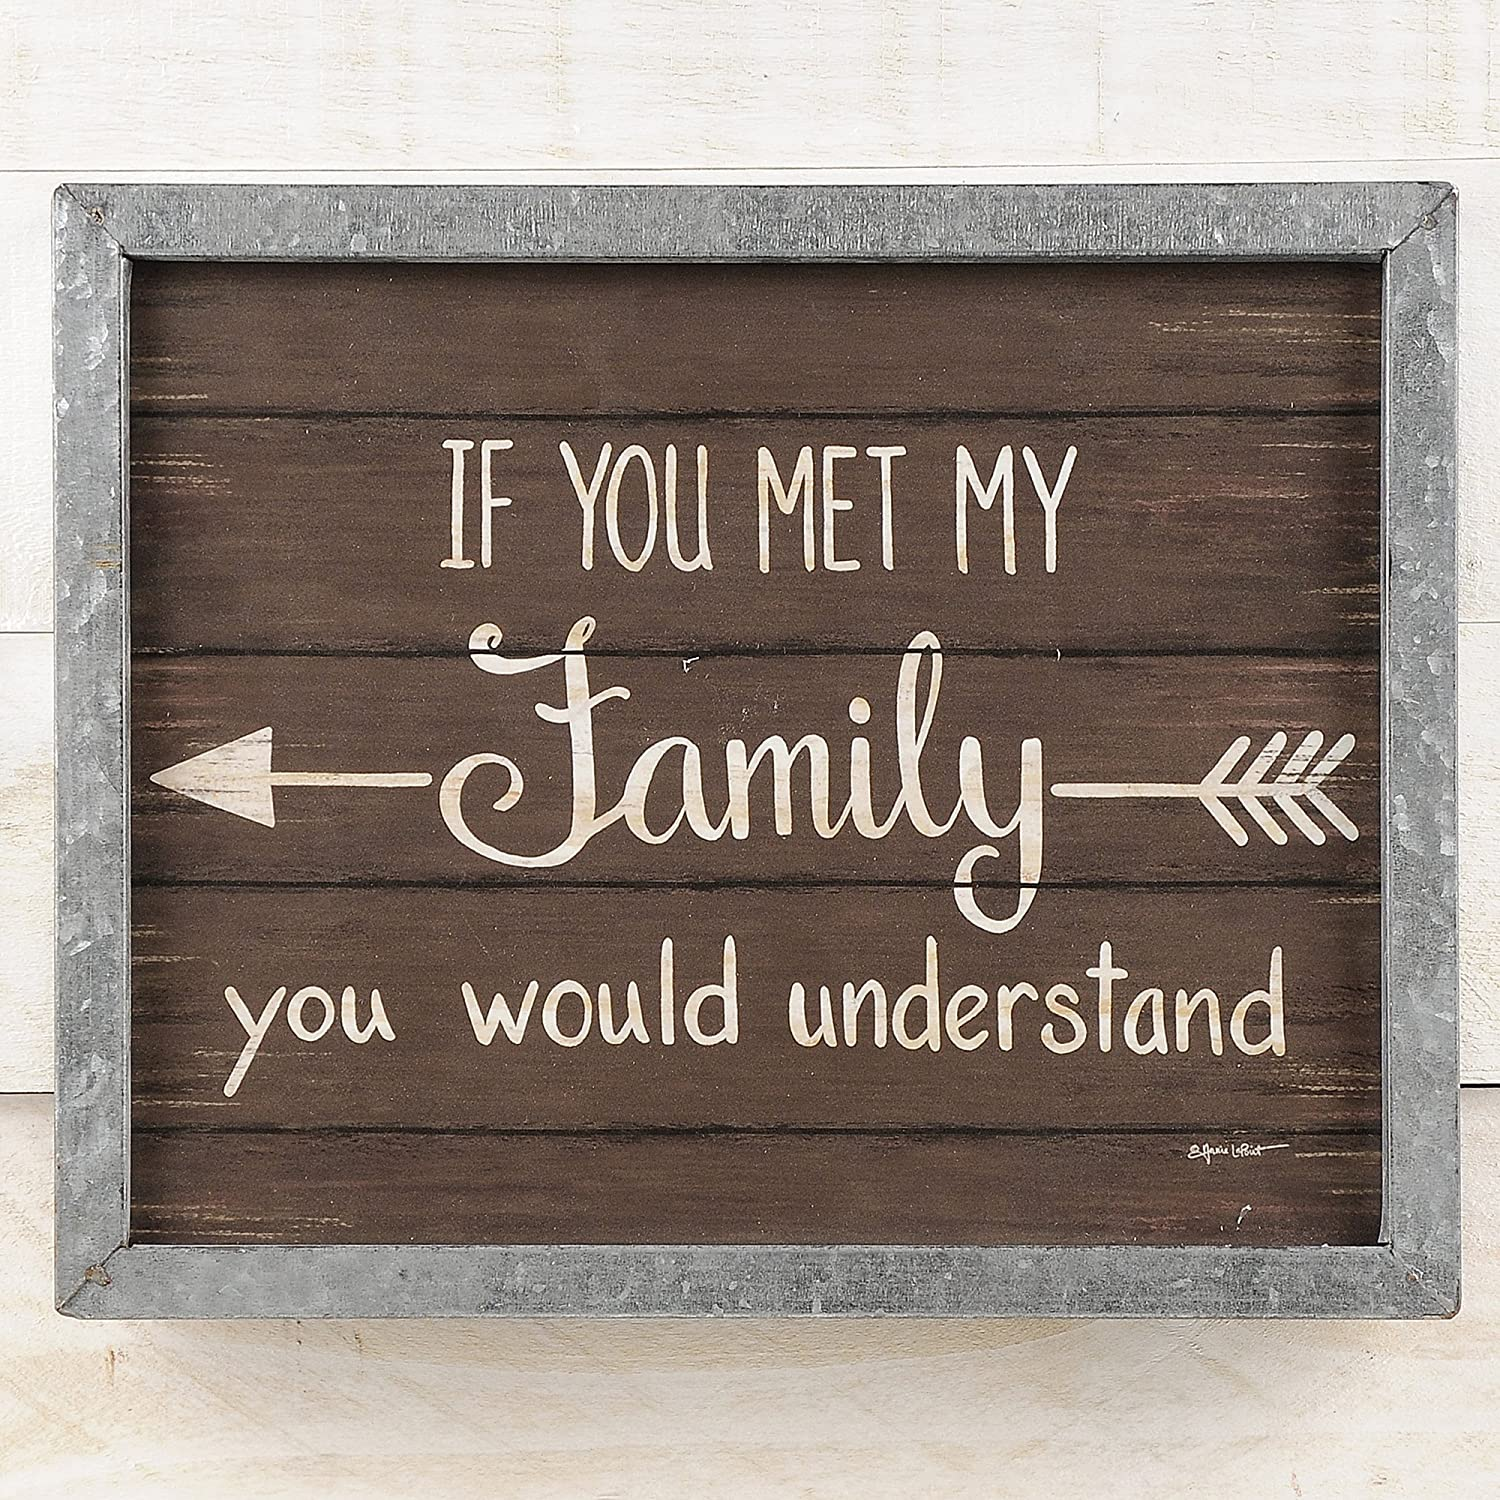 Blossom Bucket If You Met My Family Understand Arrow Metal Frame 9.5 x 12 Inch Wood Wall Plaque Sign